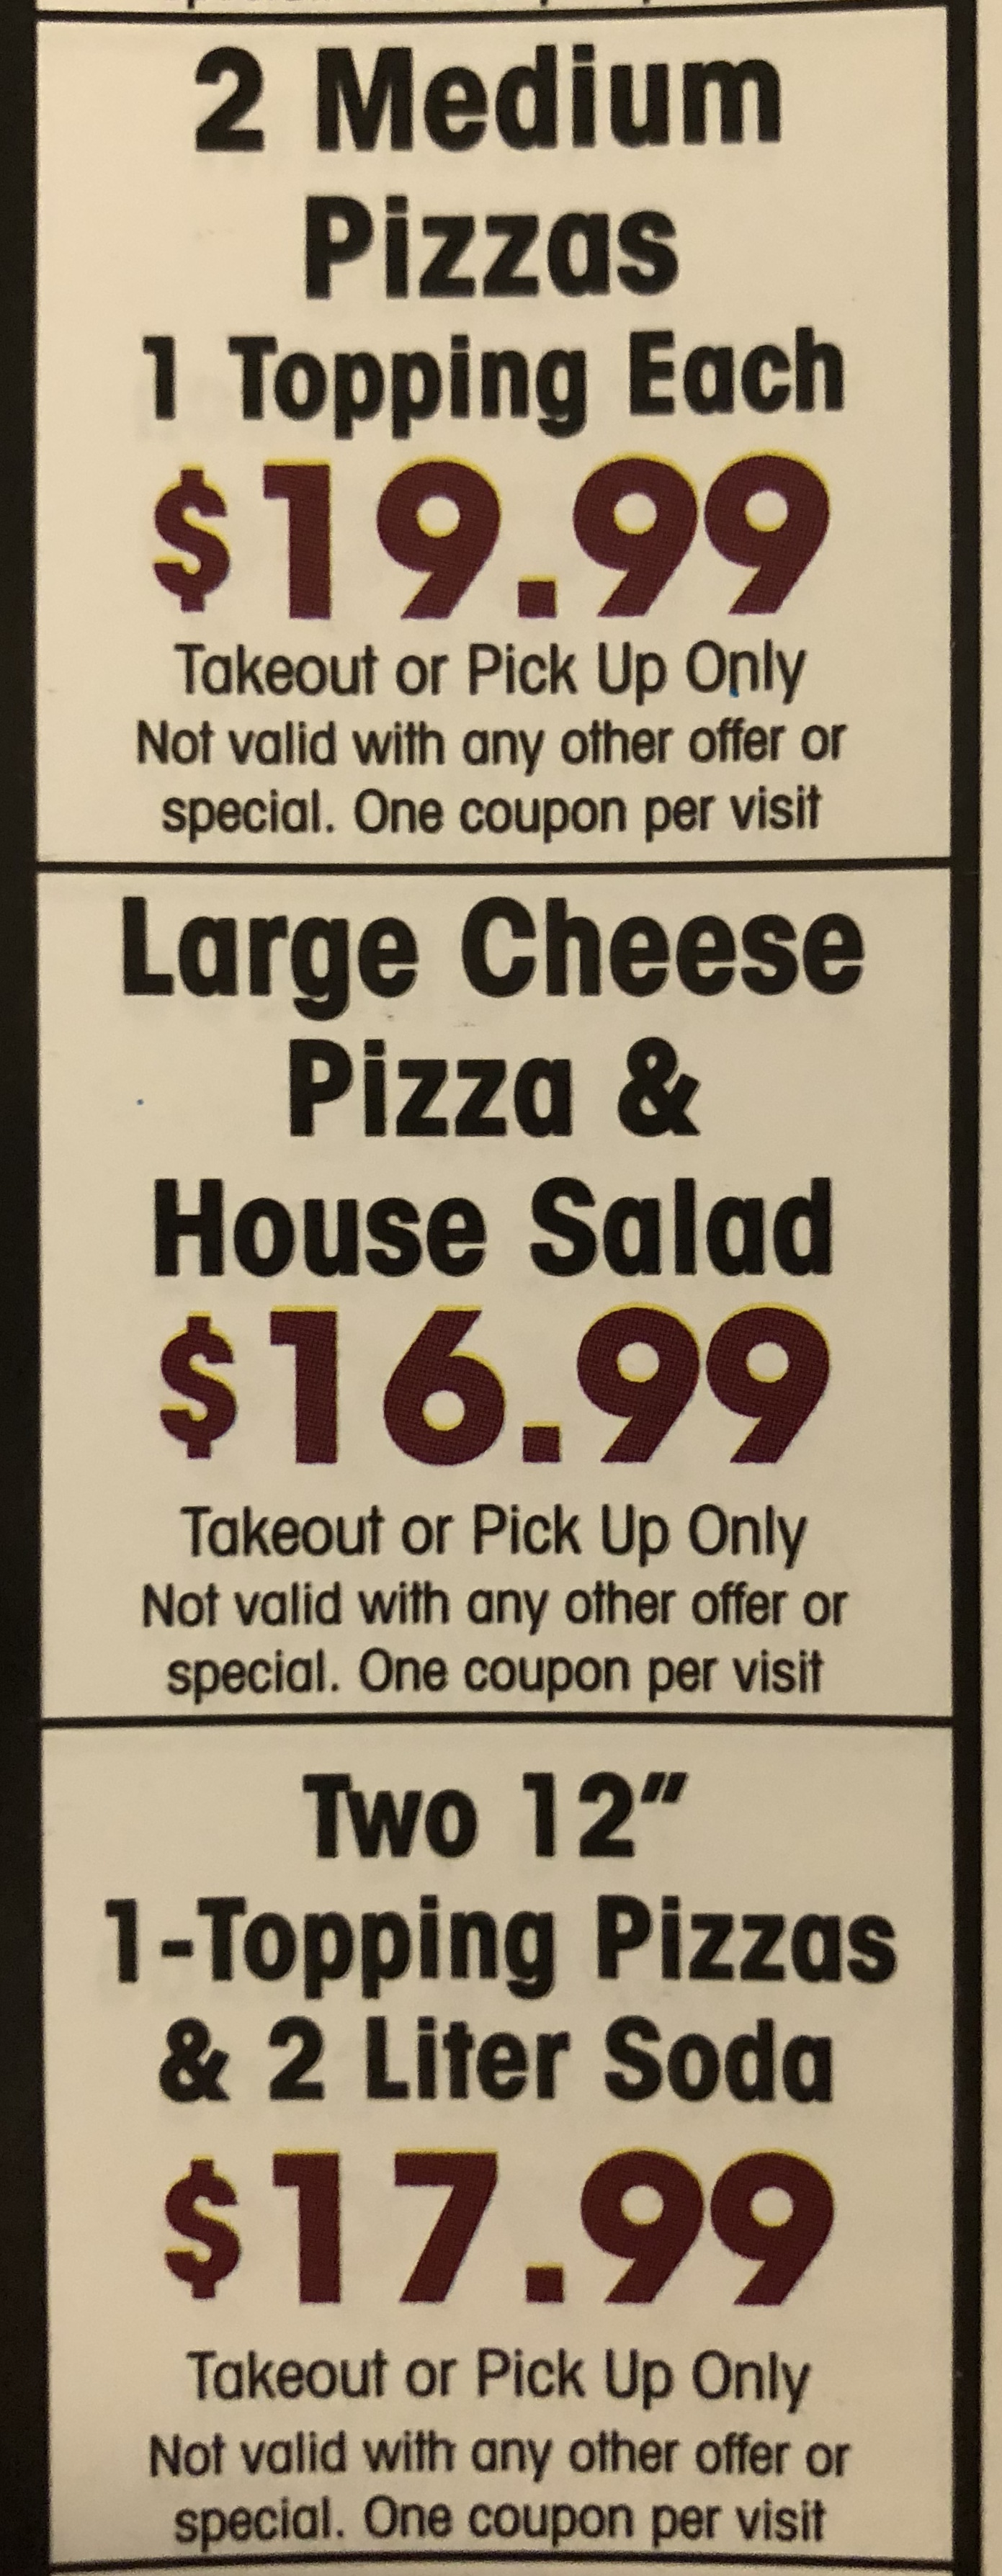 """2 medium pizzas 1 topping each $19.99 takeout or pick up only not valid with any other offer or special. one coupon per visit. large cheese pizza and house salad $16.99 takeout or pick up only not valid with any other offer or special. one coupon per visit. two 12"""" 1-topping pizzas $17.99 takeout or pick up only not valid with any other offer or special. one coupon per visit."""